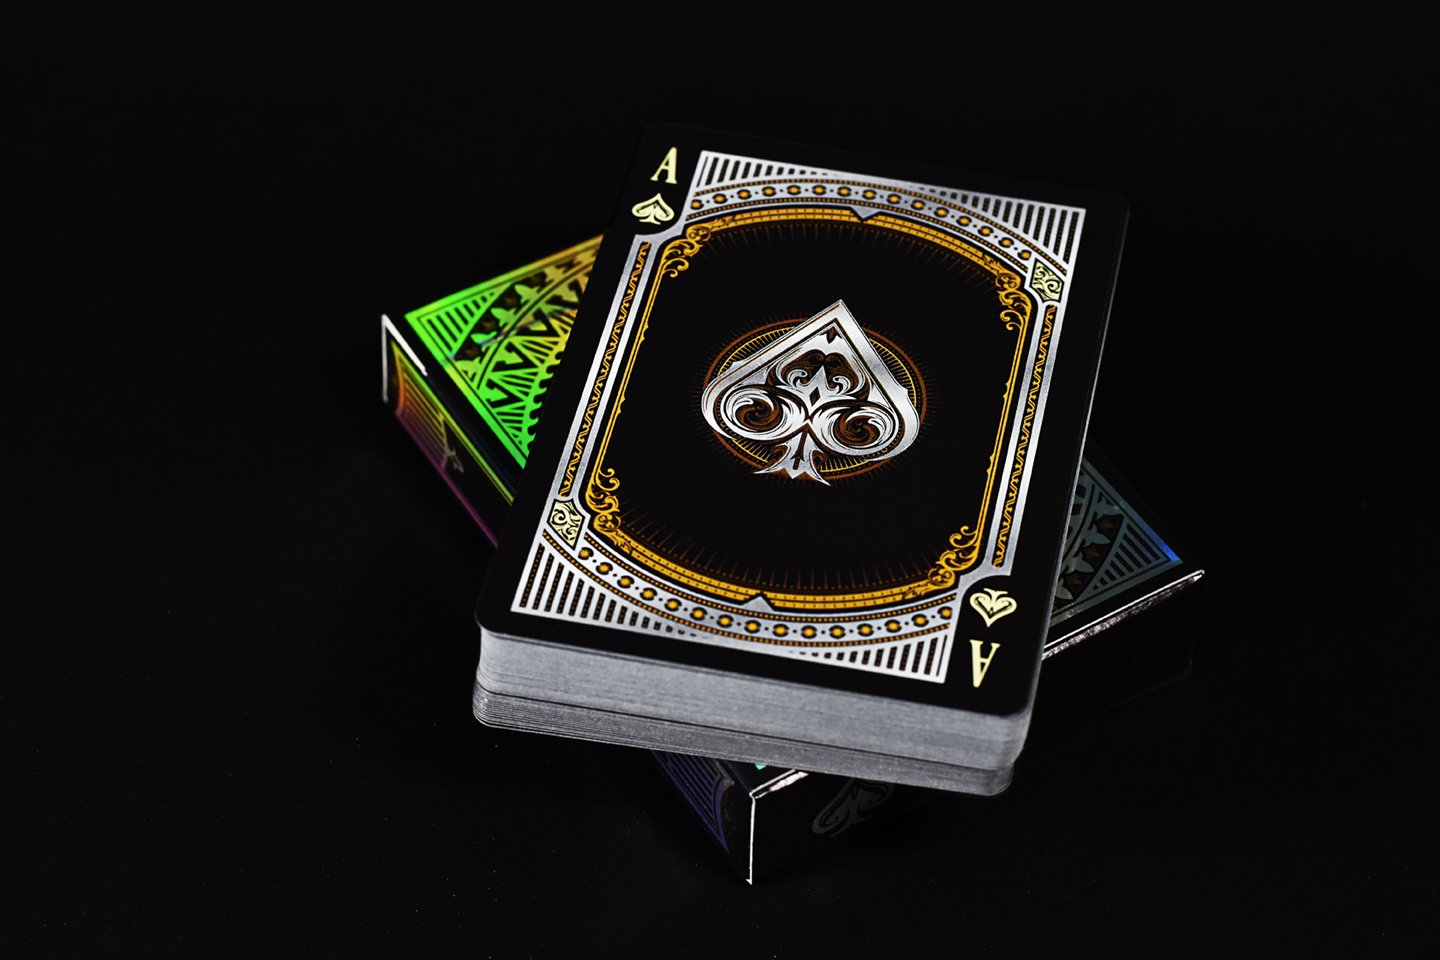 Alloy Copper Playing Cards Poker Deck Custom Design Foiled Back New by Gamblers Warehouse (Image #3)